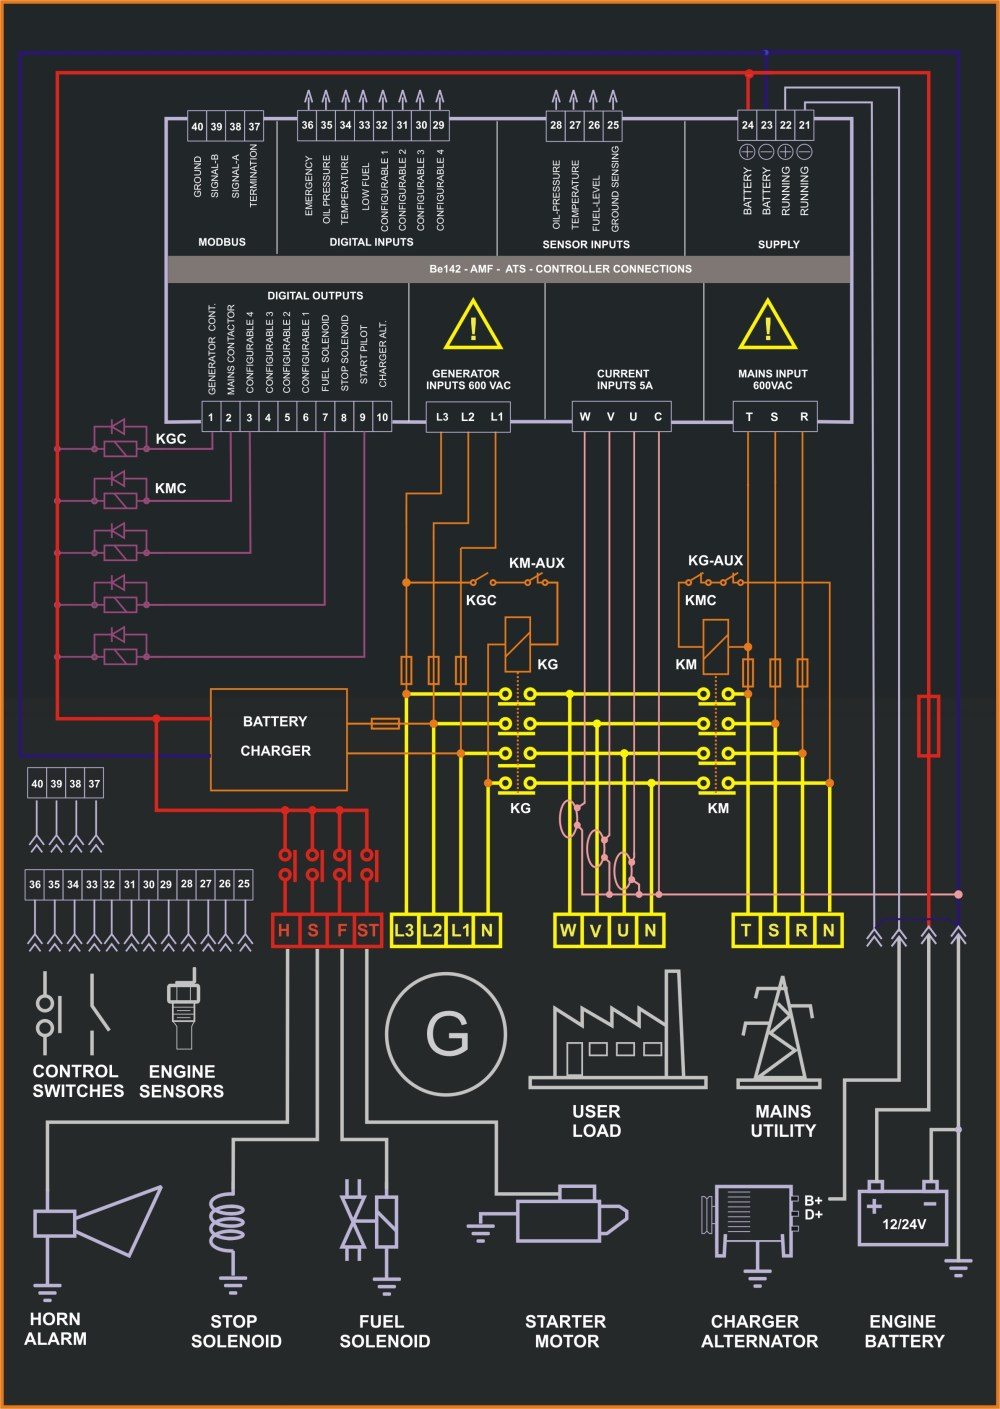 medium resolution of wiring diagram of control panel wiring diagram sheet cat generator control panel wiring diagram wiring diagram generator control panel